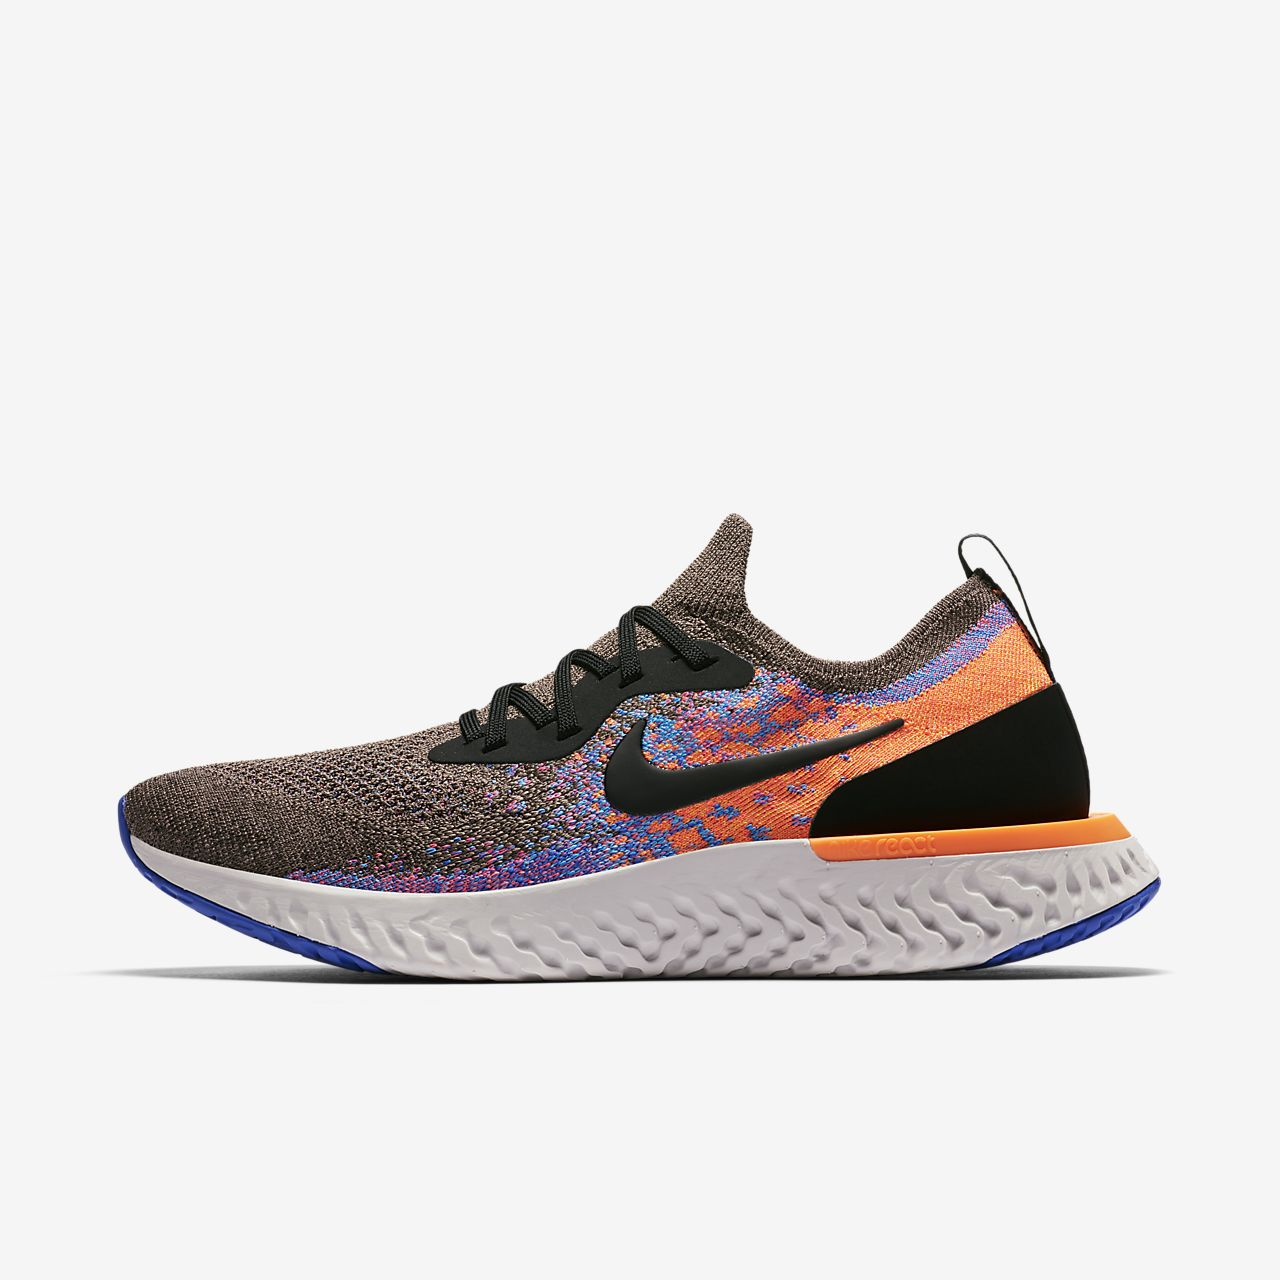 fe3fabc24 Chaussure de running Nike Epic React Flyknit pour Homme